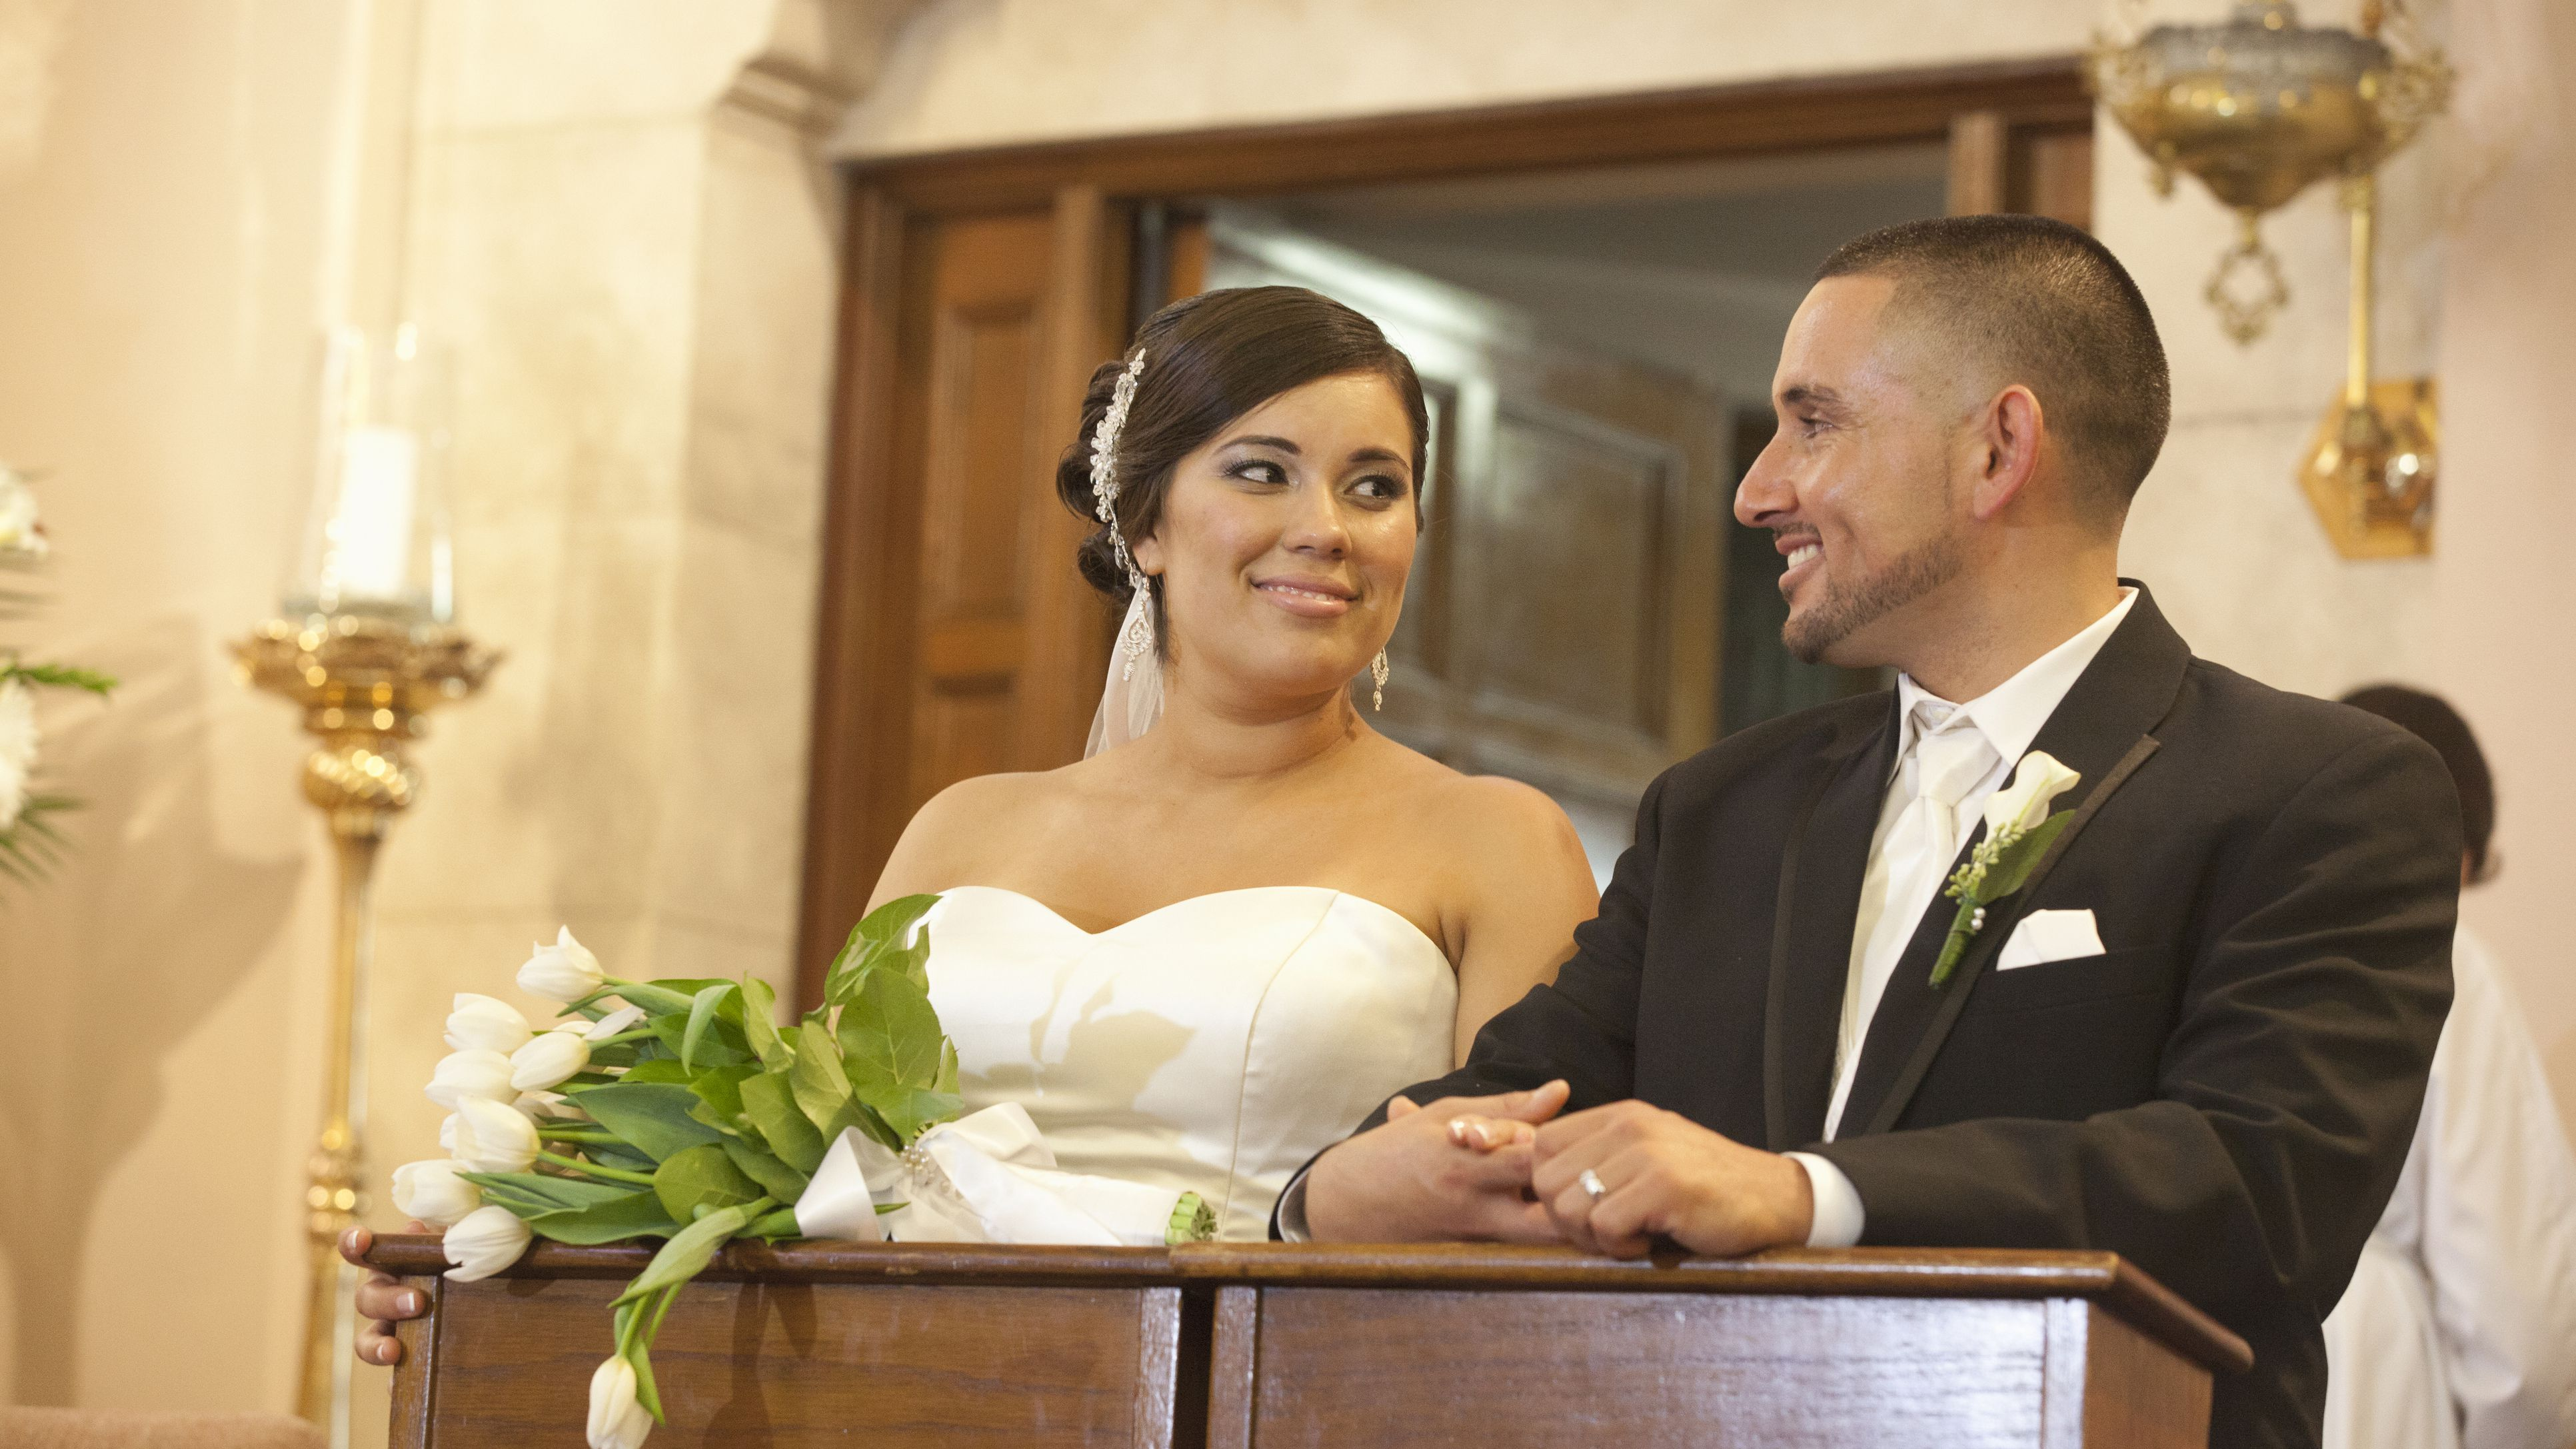 The Sacrament Of Marriage In The Catholic Church